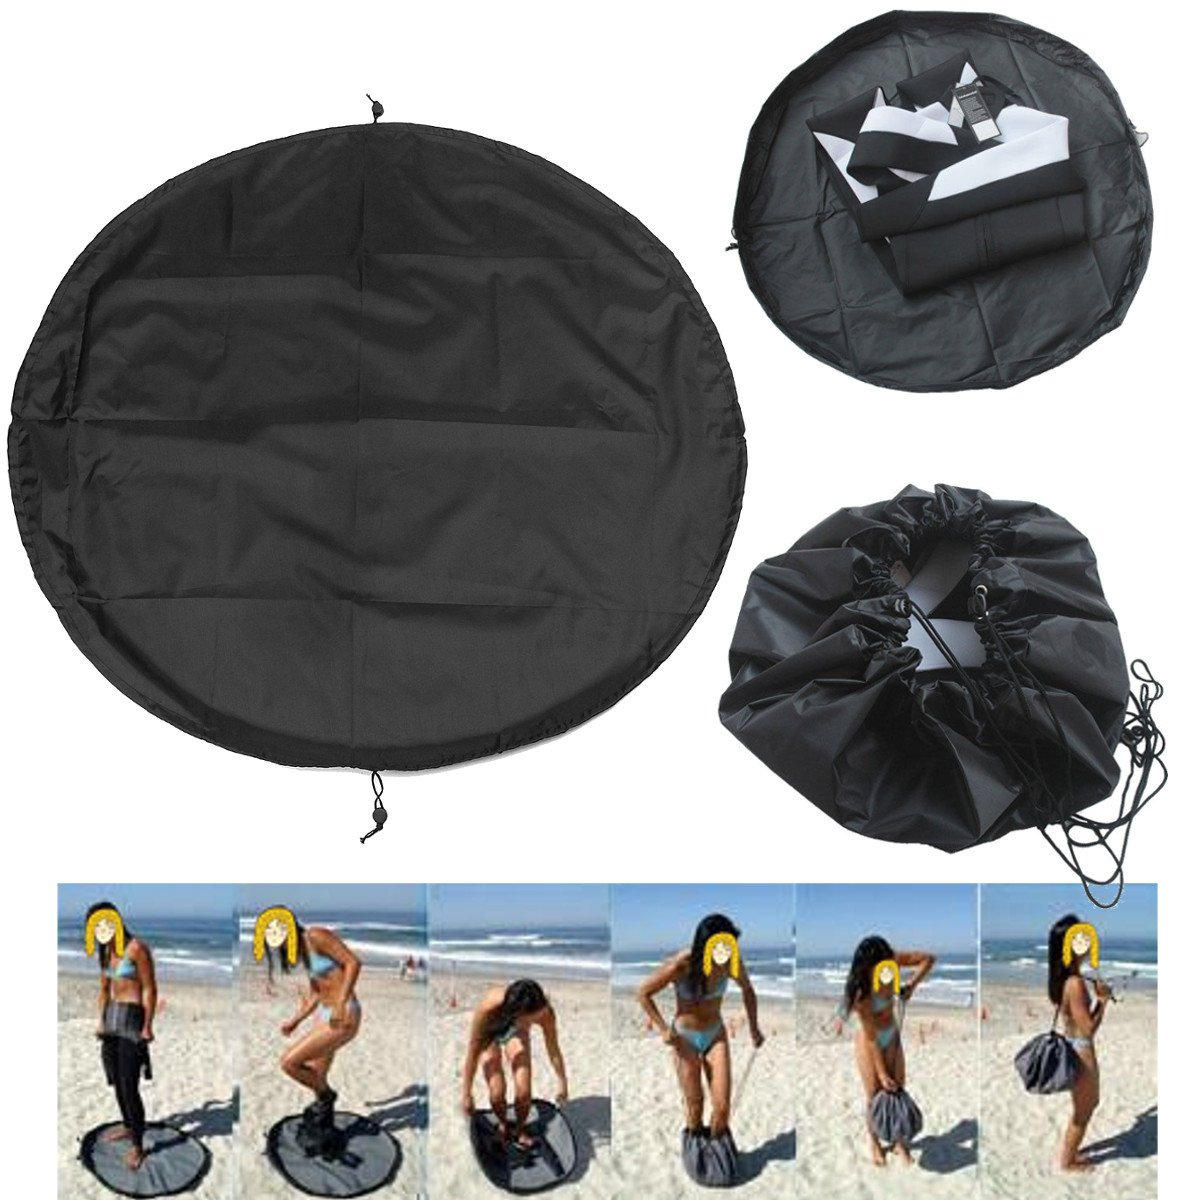 Wincom Dishman Water Sports WD Nylon 90cm Surfing Wetsuit Diving Suit Change Bag Mat Waterproof Bag Carry Pack Pouch